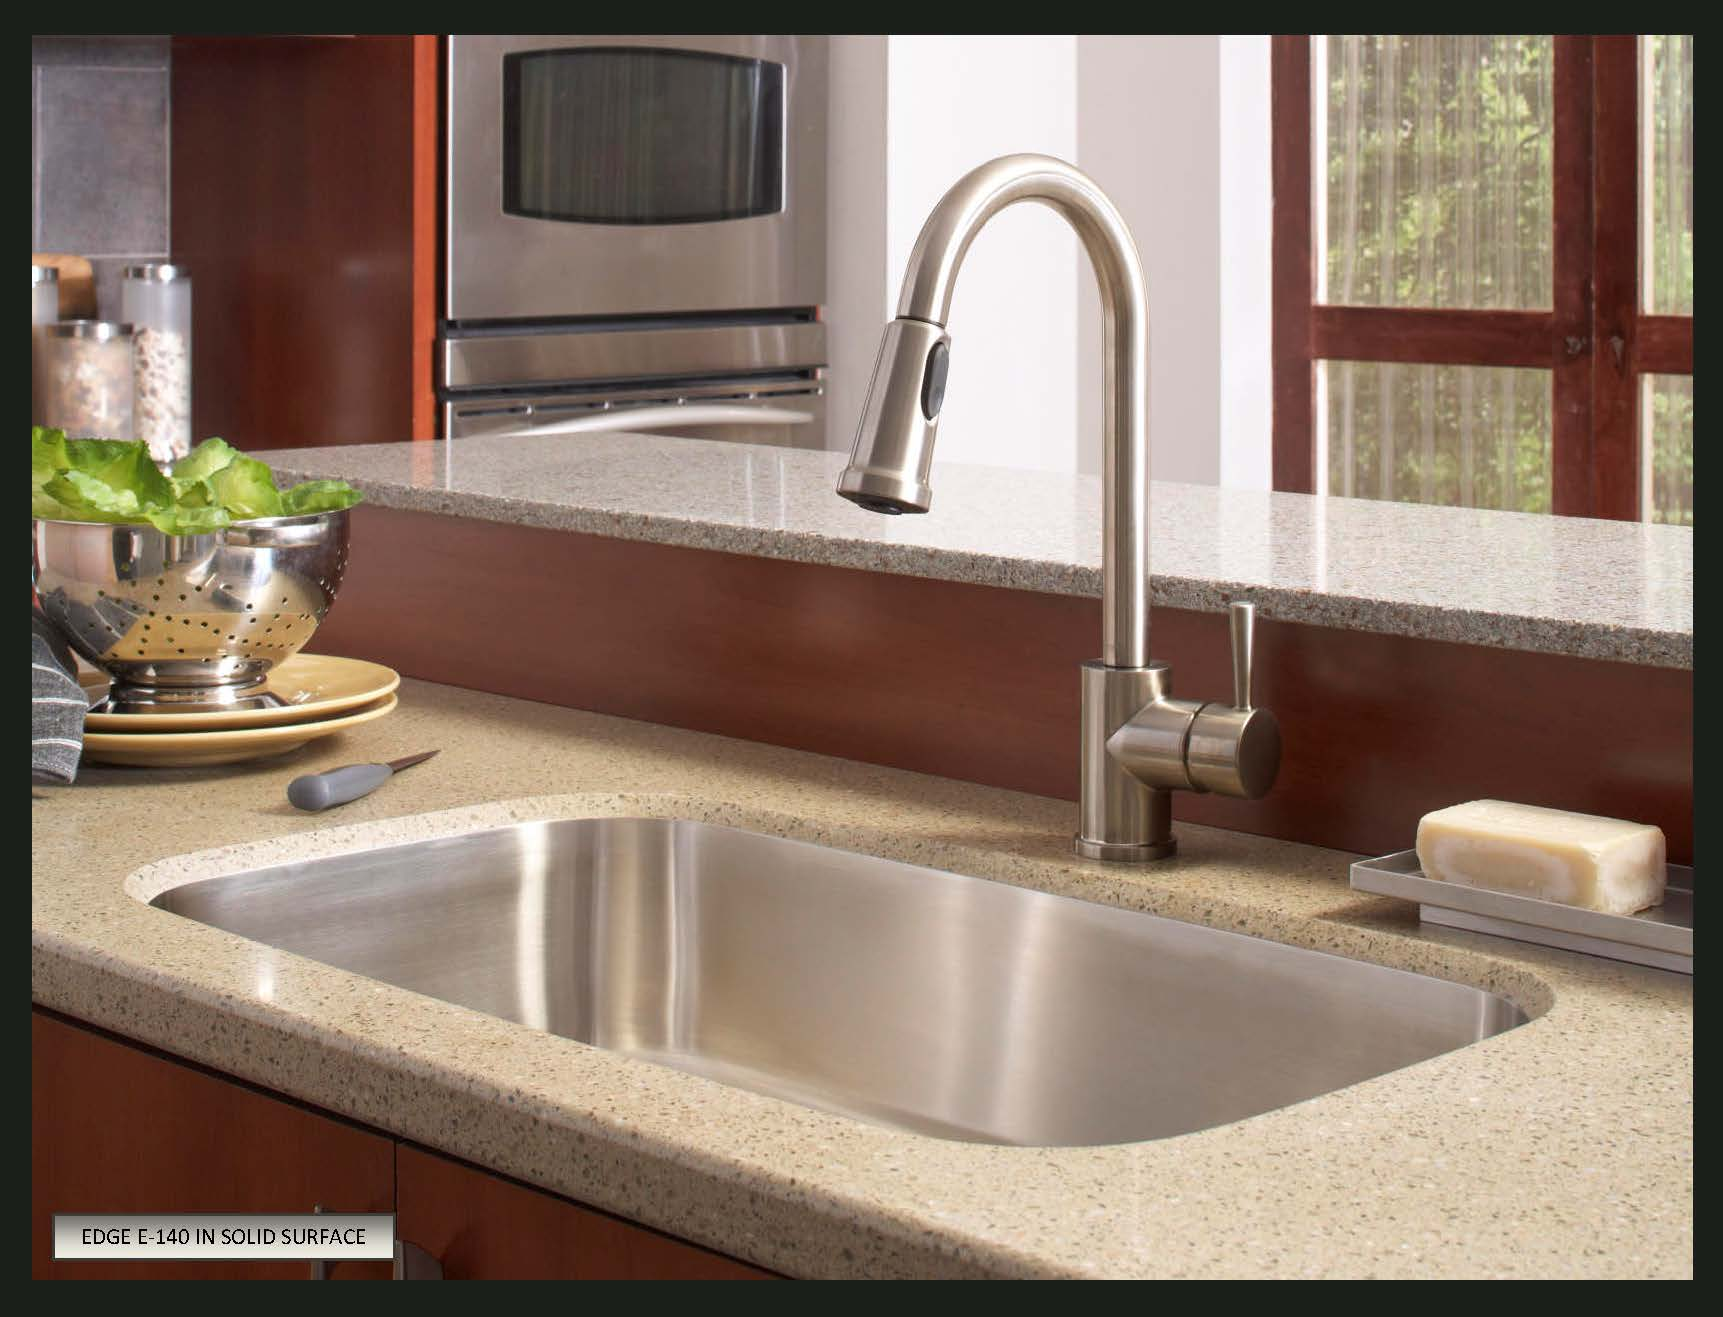 custom fabrication with countertops dsc built of l in countertop shaped view sink side steel stainless